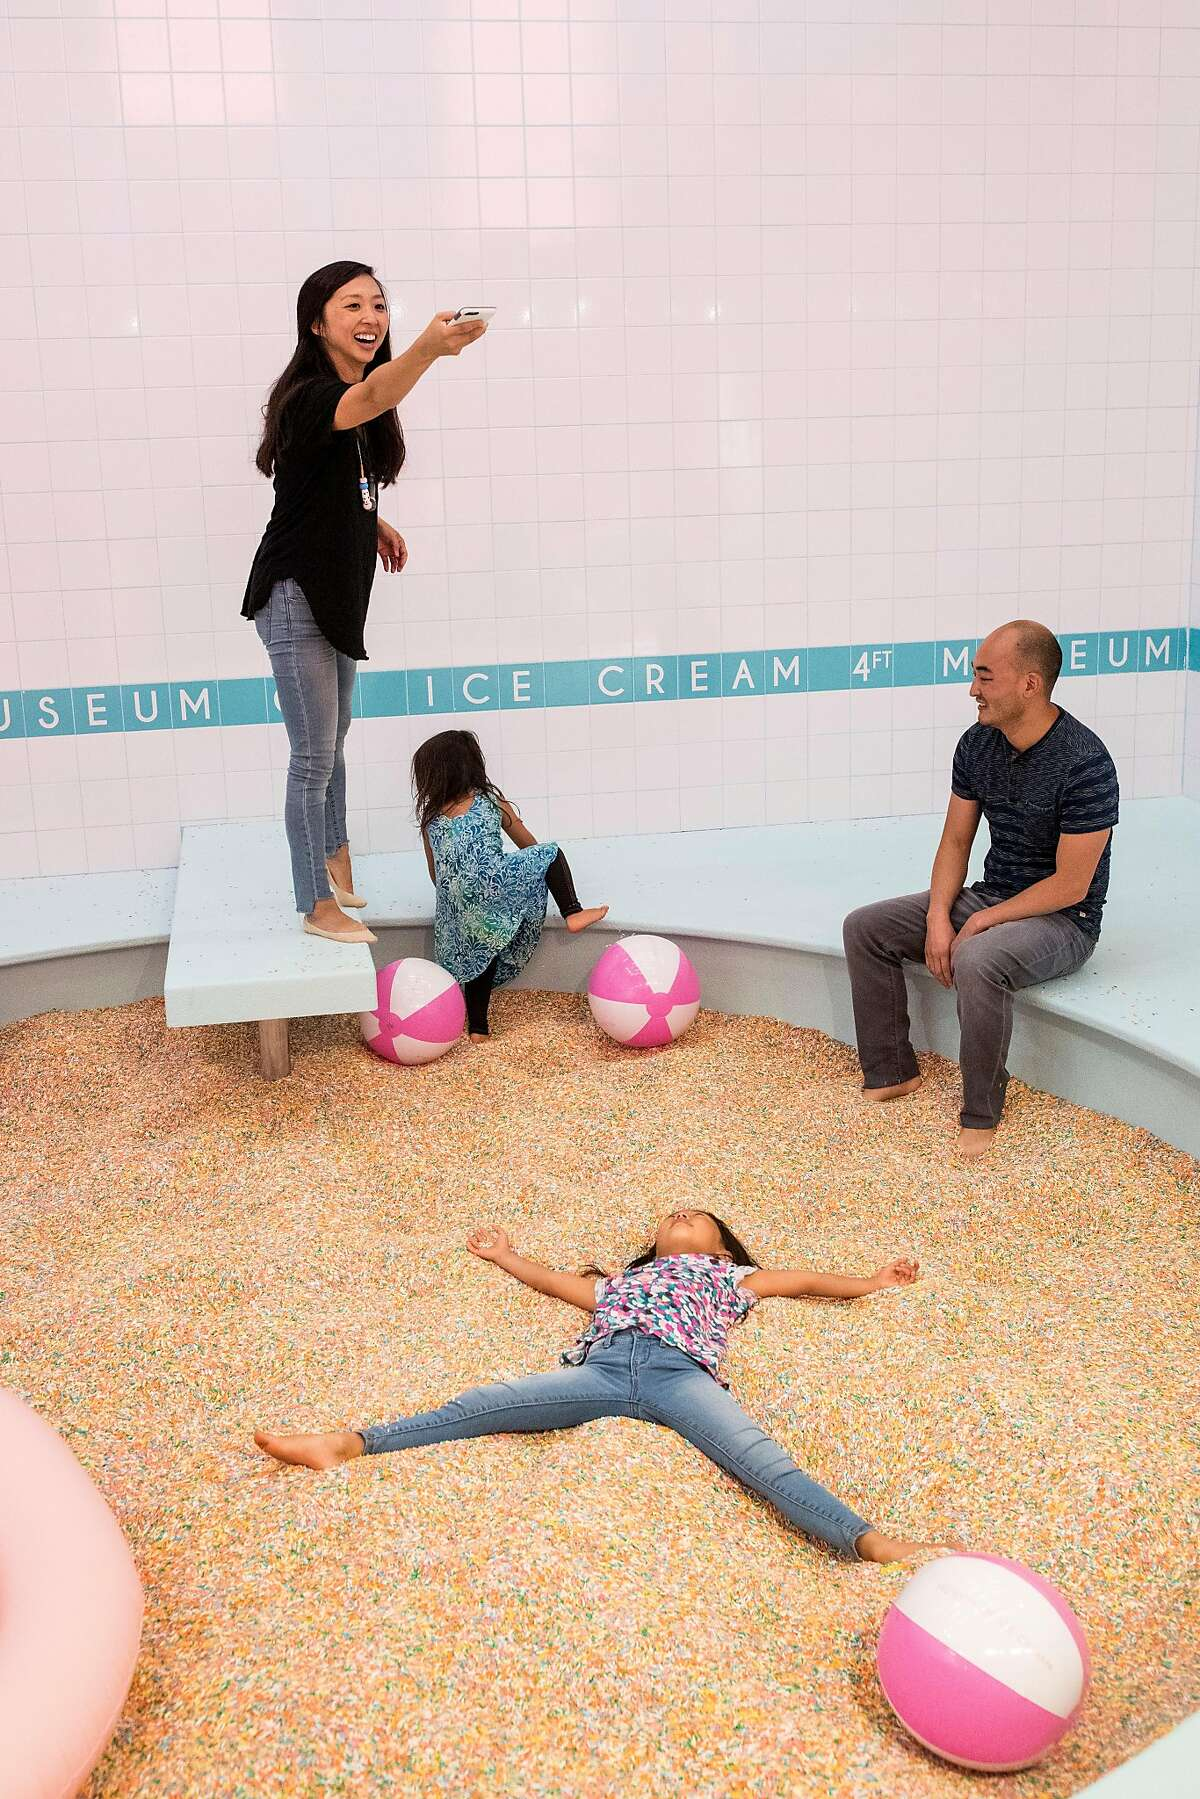 Amy Kim (left) snaps photos of her daughter Adele Kim playing in a pool of sprinkles at the Museum of Ice Cream in San Francisco, Calif., on Sunday, September 17, 2017. The pop-up exhibit opened to the public on Sunday.